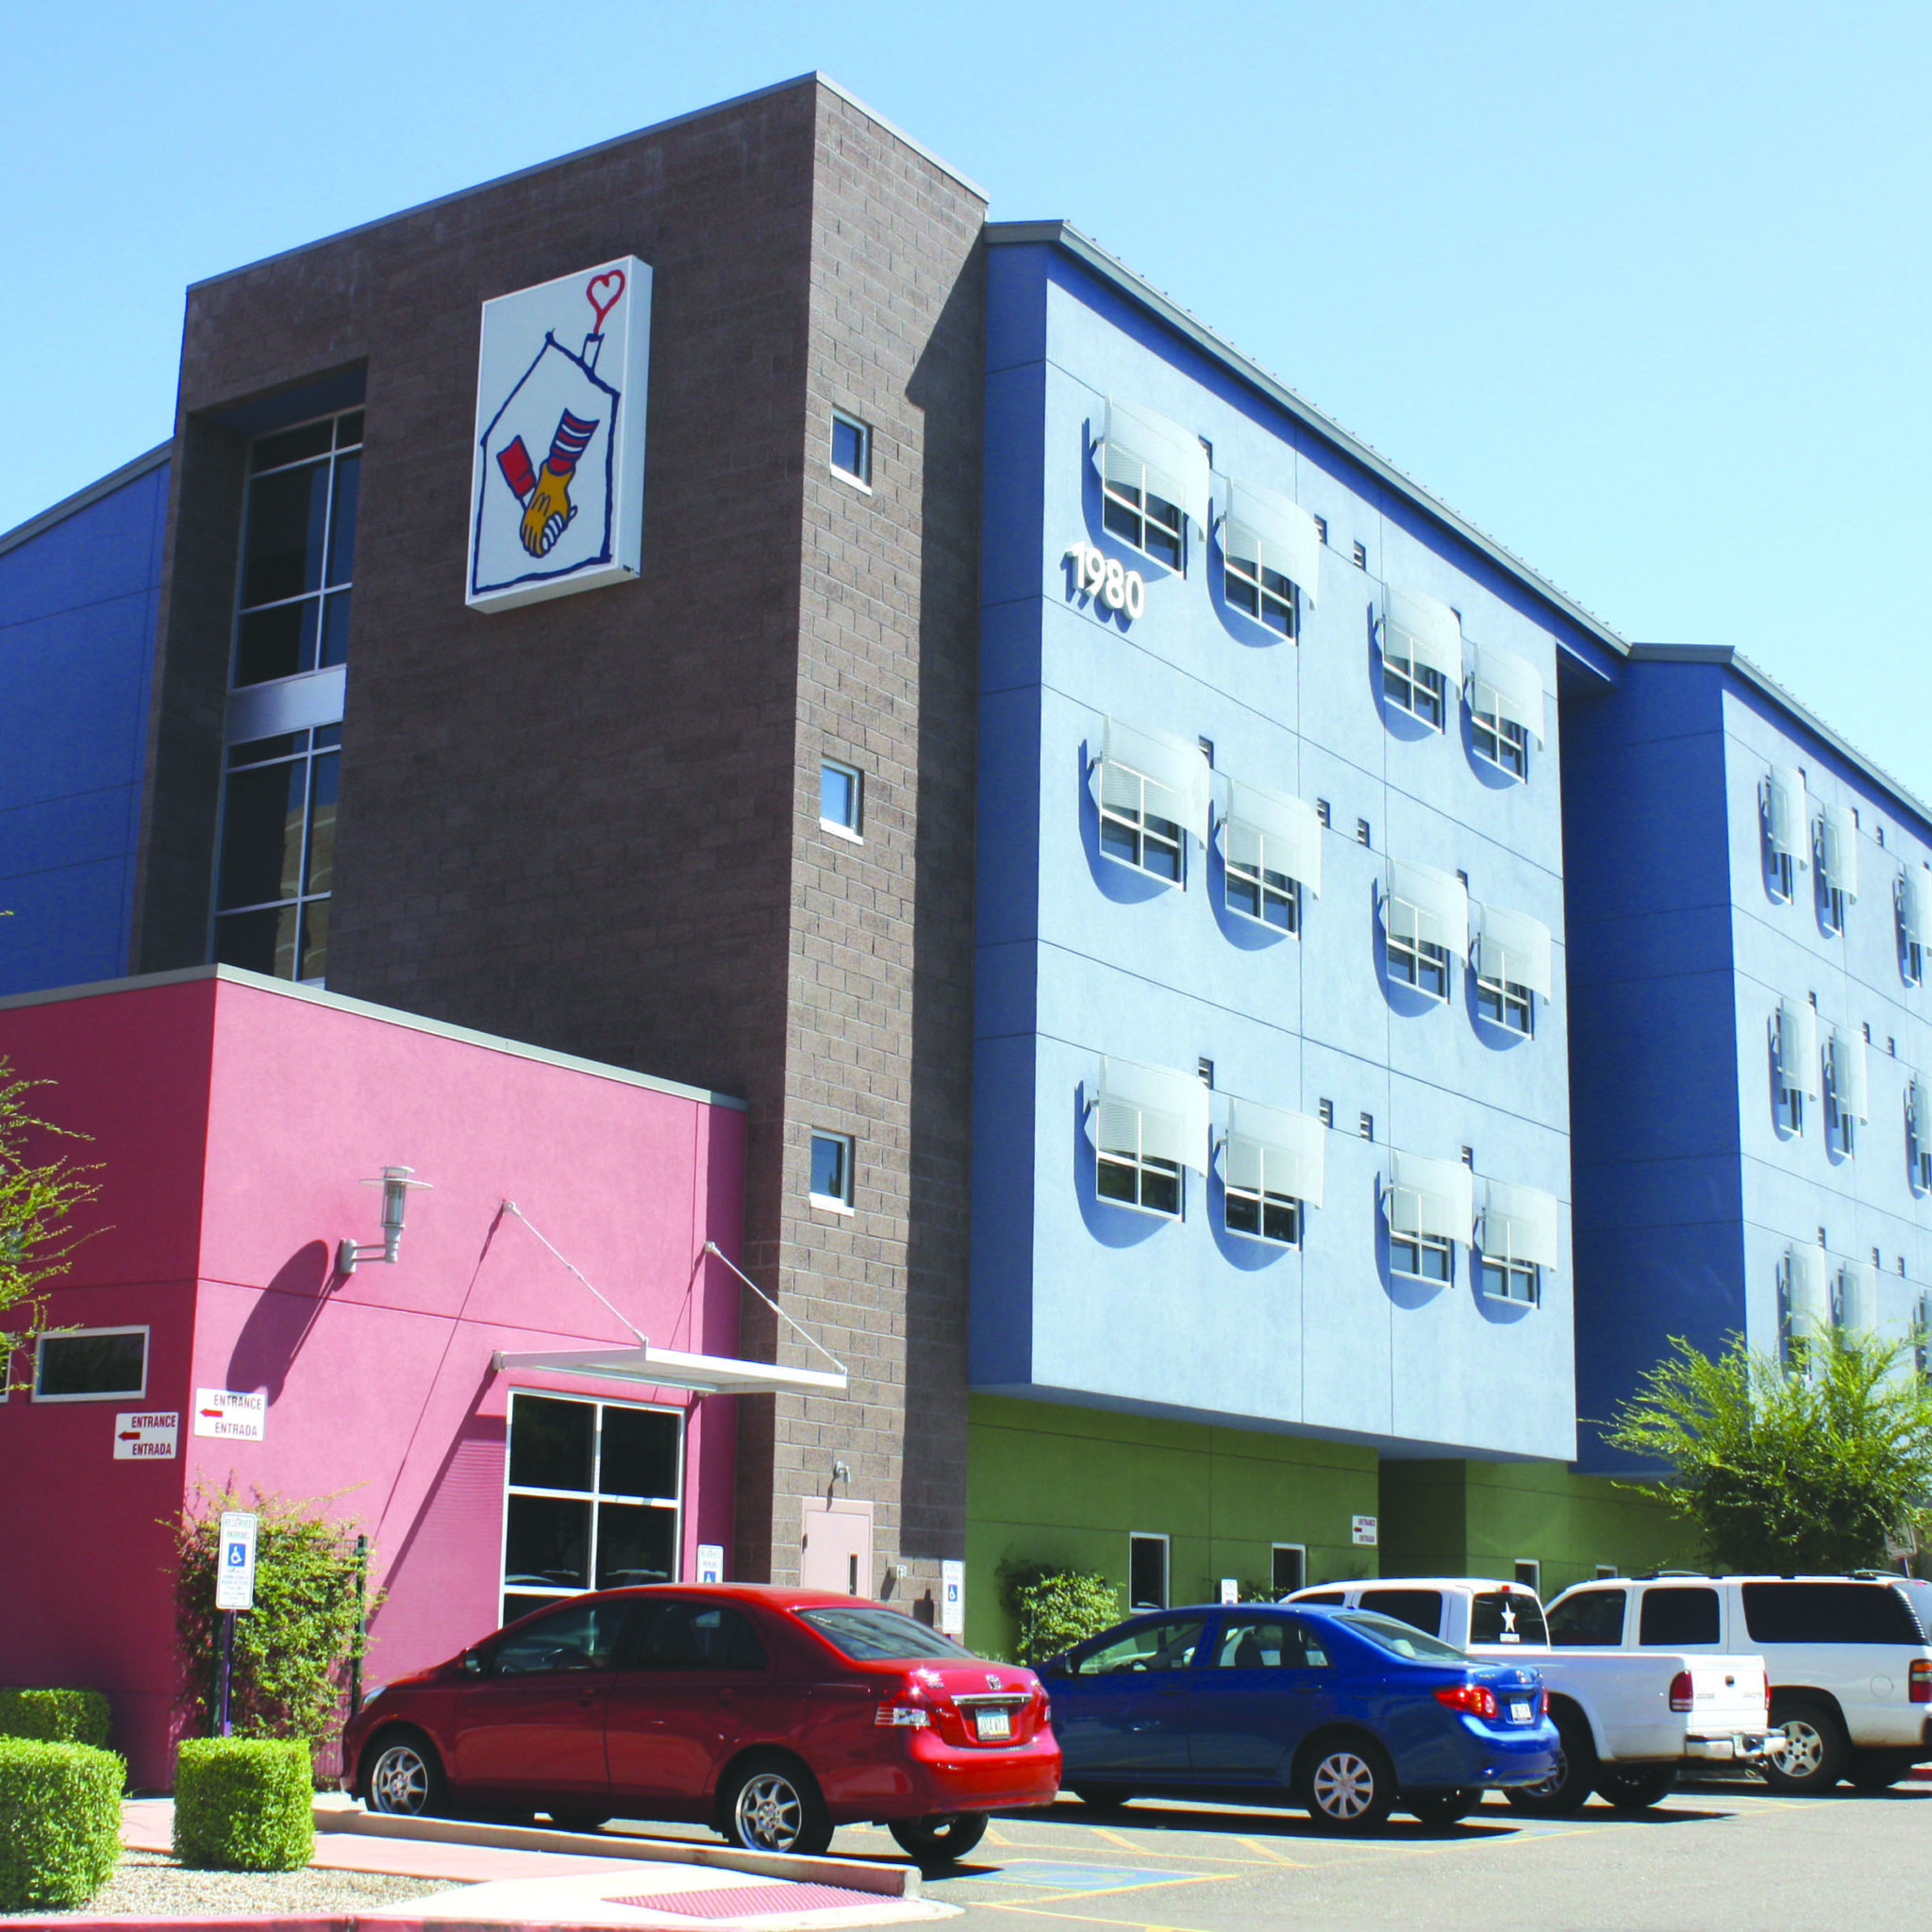 Cambridge House located on the campus of Cardon Children's Medical Center